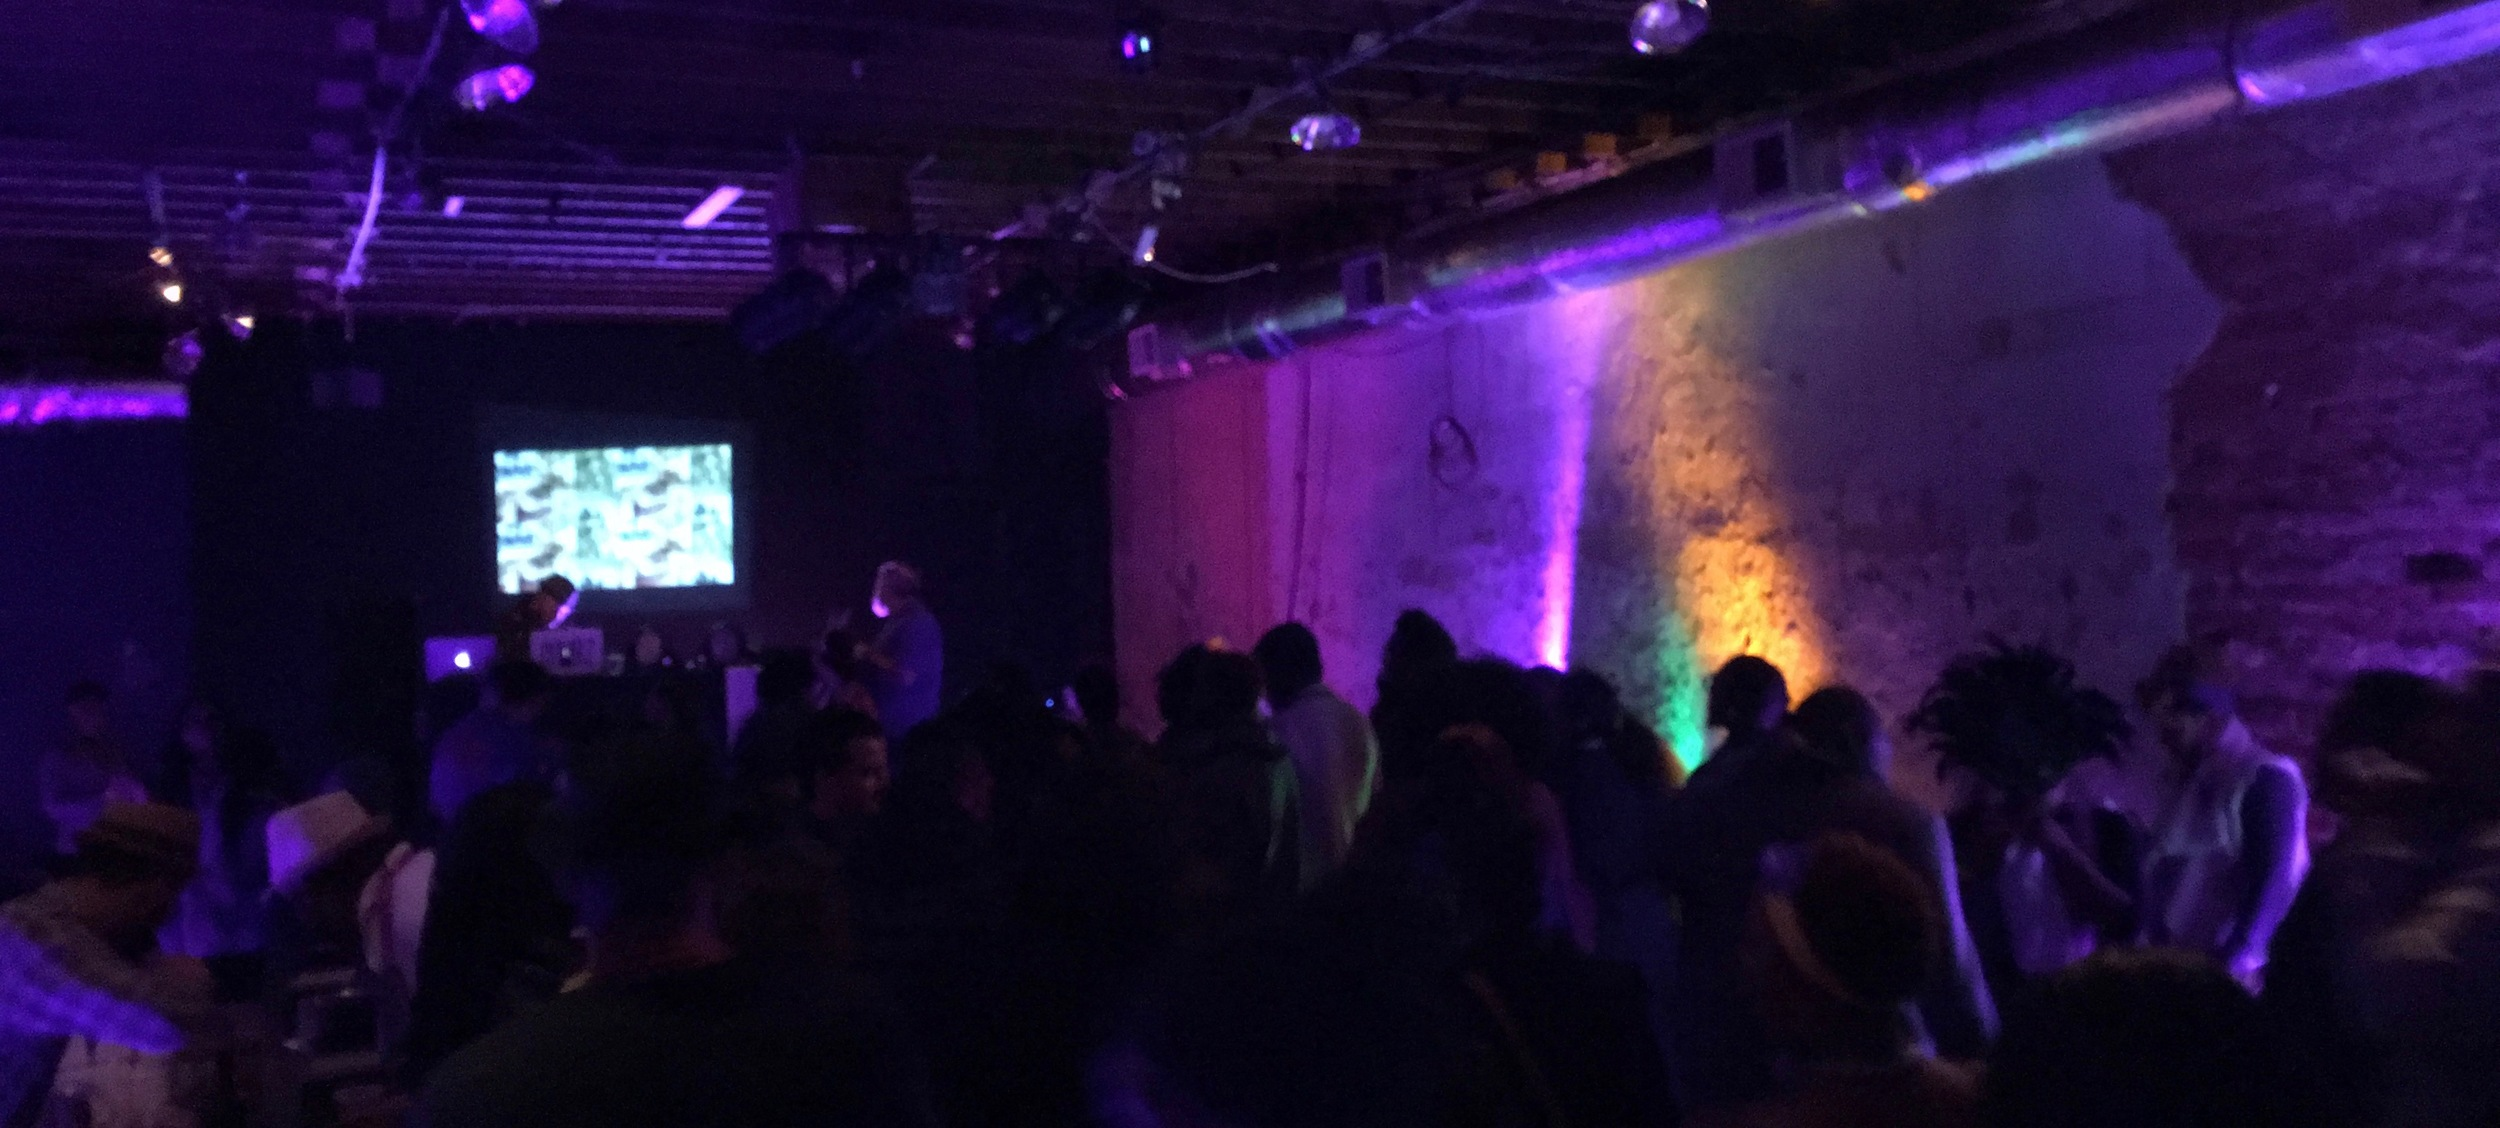 Mardi Gras 2016 @ the Sound Table (Space 2)